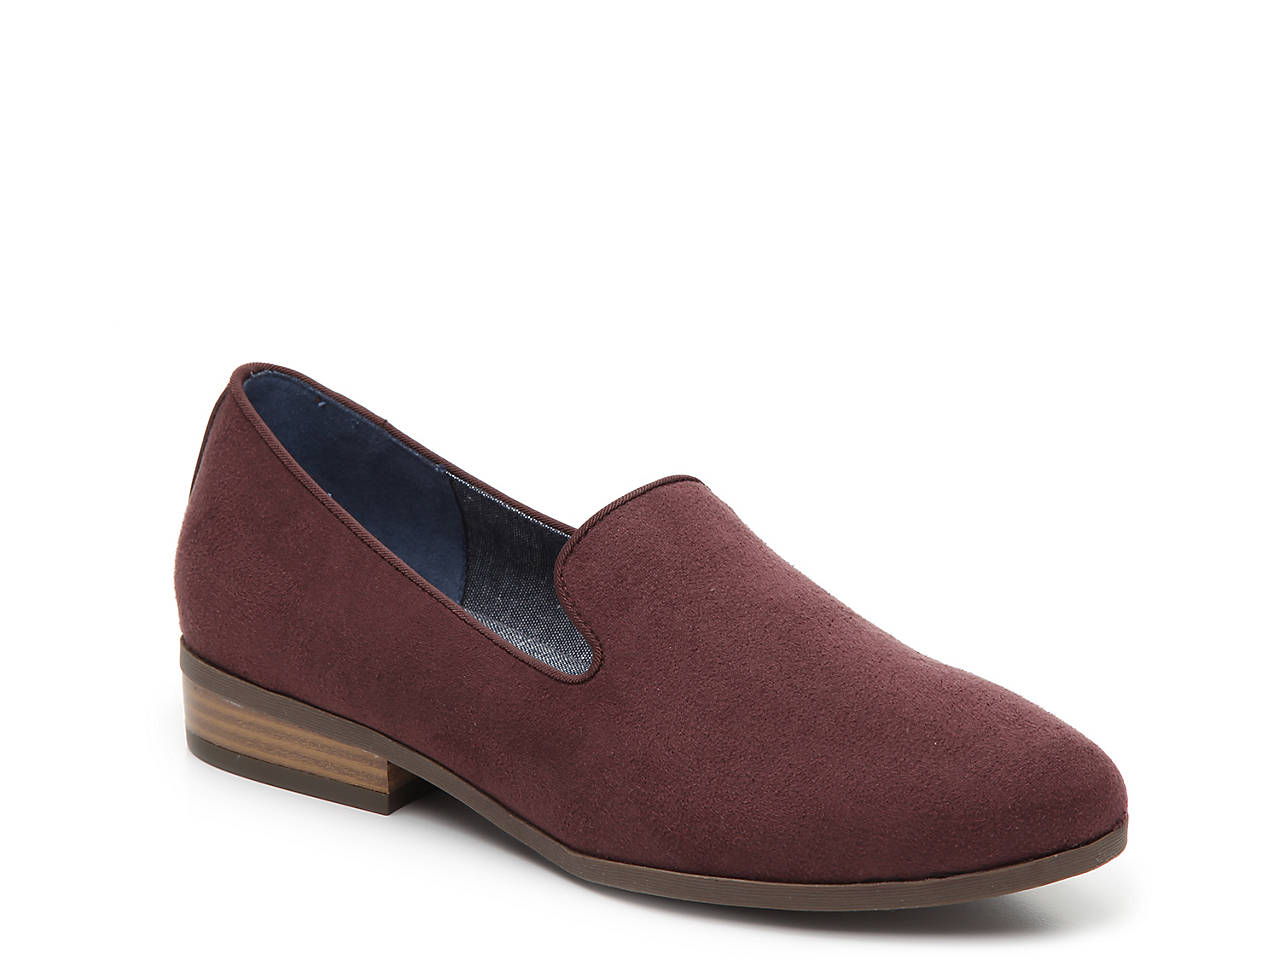 0149a2f22f Dr. Scholl's Emperor Loafer Women's Shoes | DSW